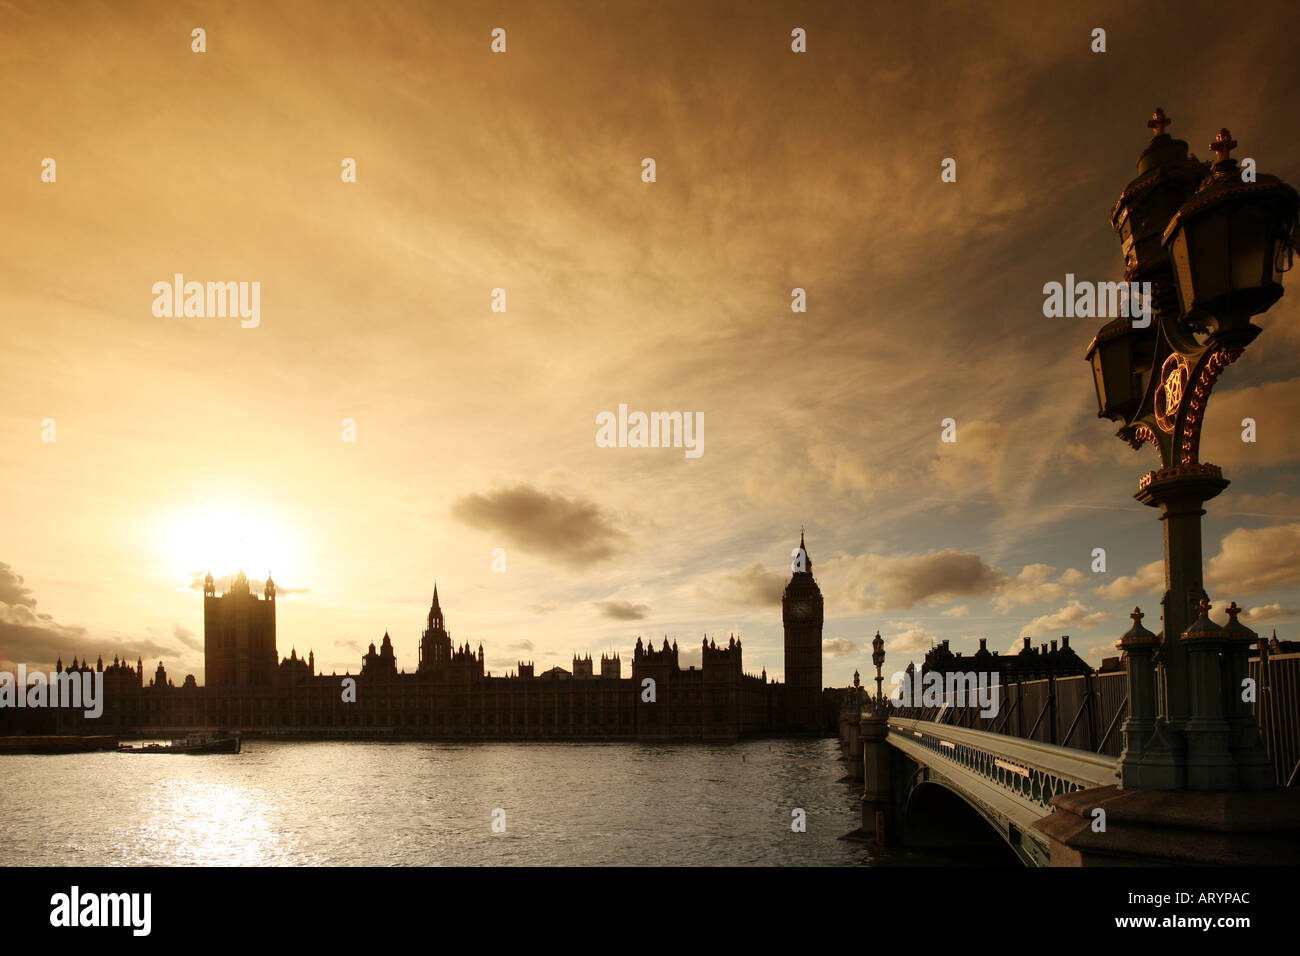 House of Parliament. Westminster, View across the River Thames at sunset towards the House of Commons at Westminster, London - Stock Image